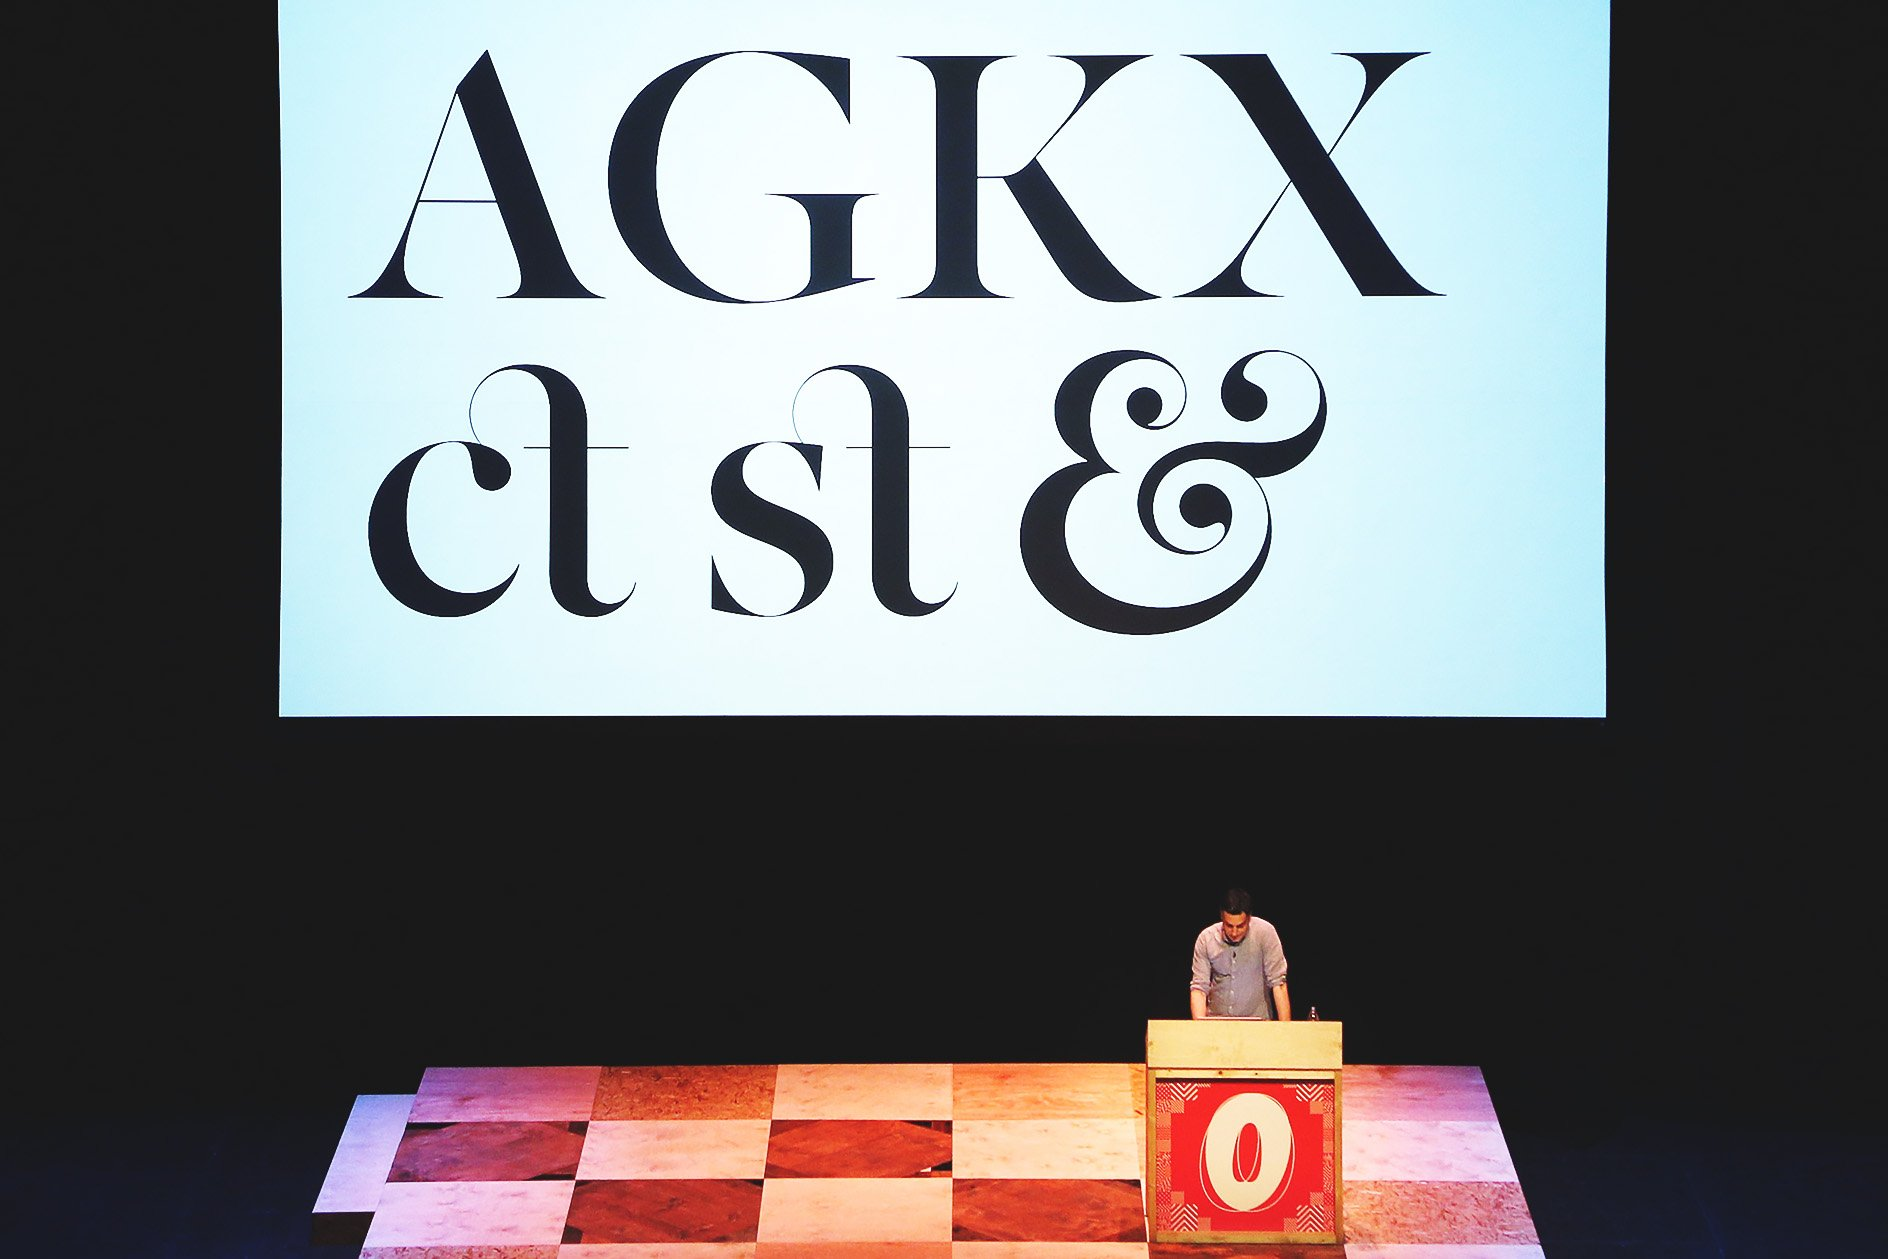 Matt Willey at OFFSET 2015 – Ligatures for the Independent Typefaces